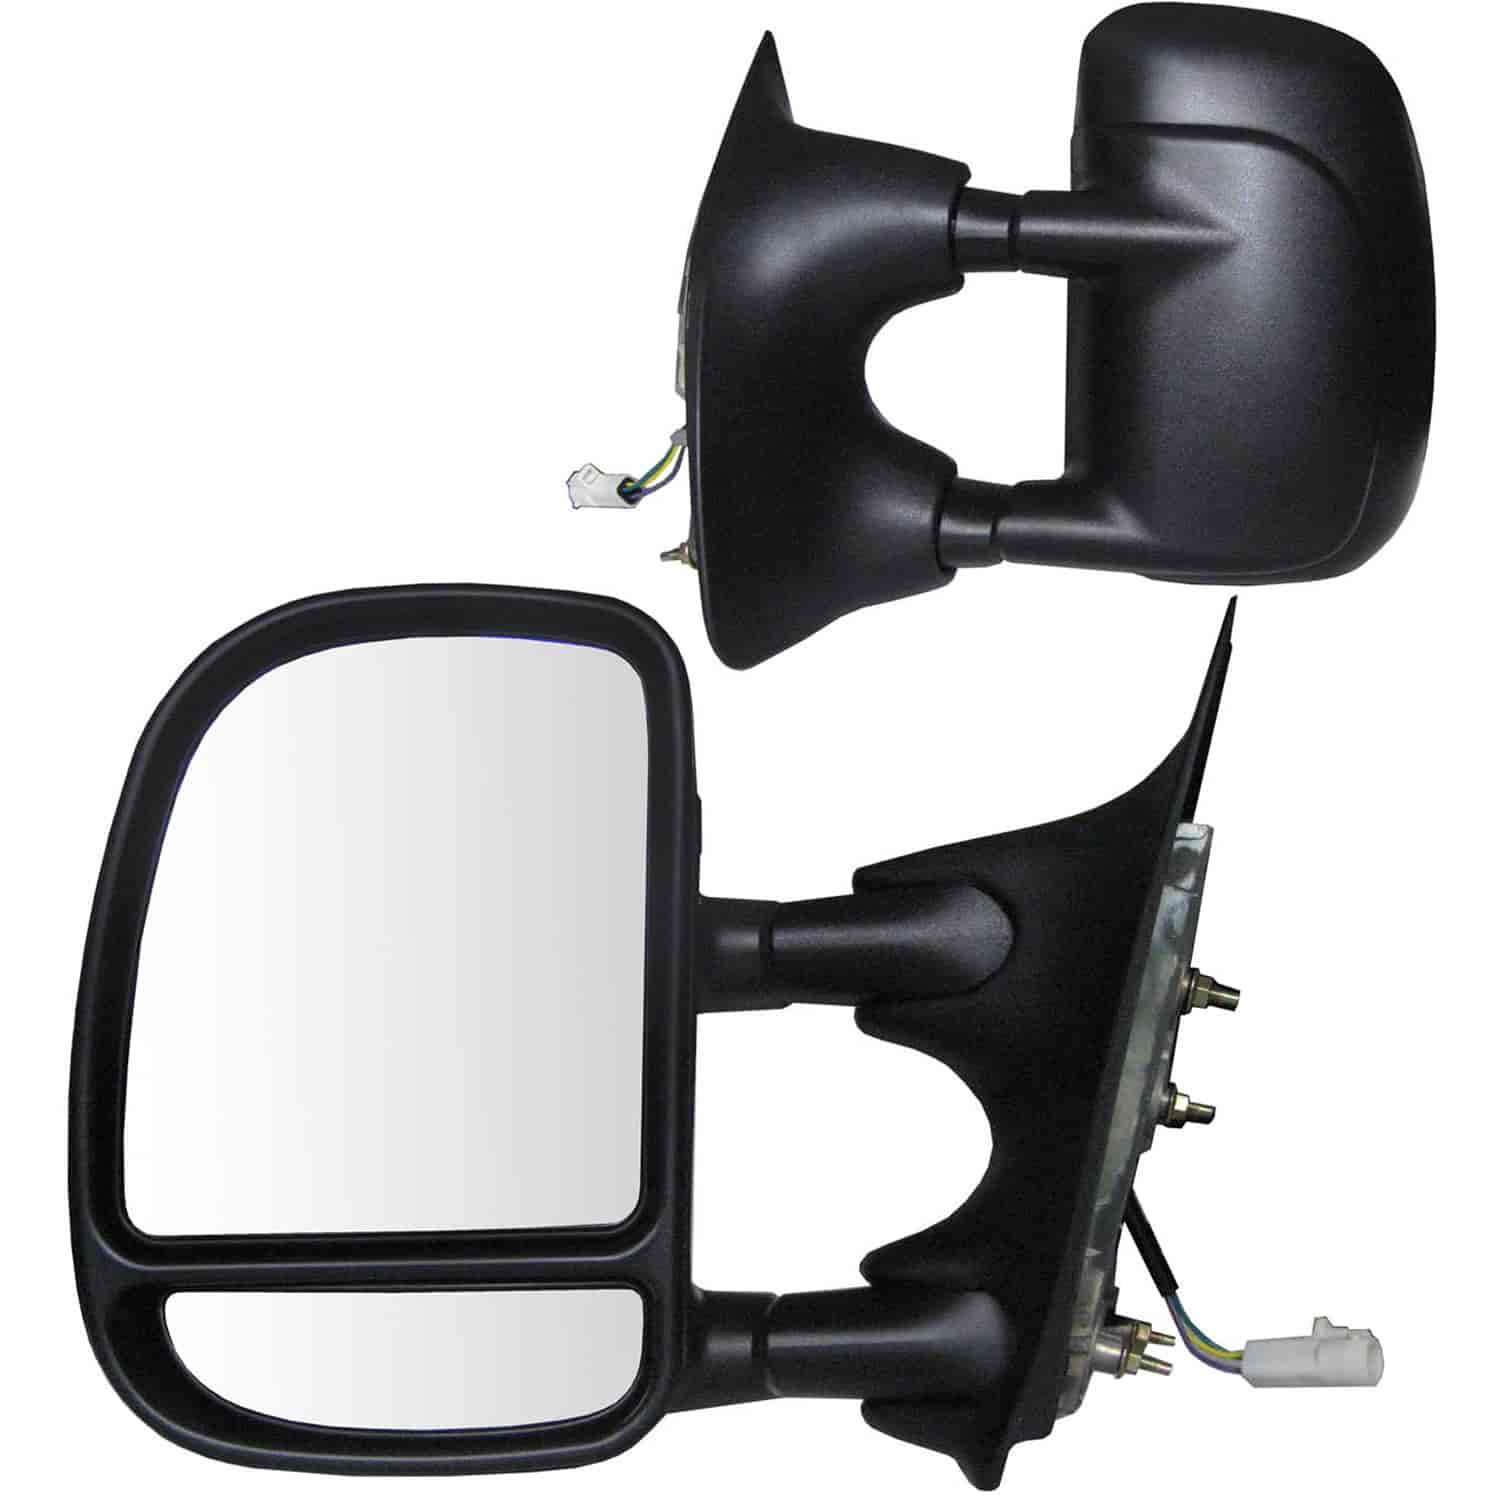 K source 61069 70f oem style replacement mirror fits 1999 for Mirror source